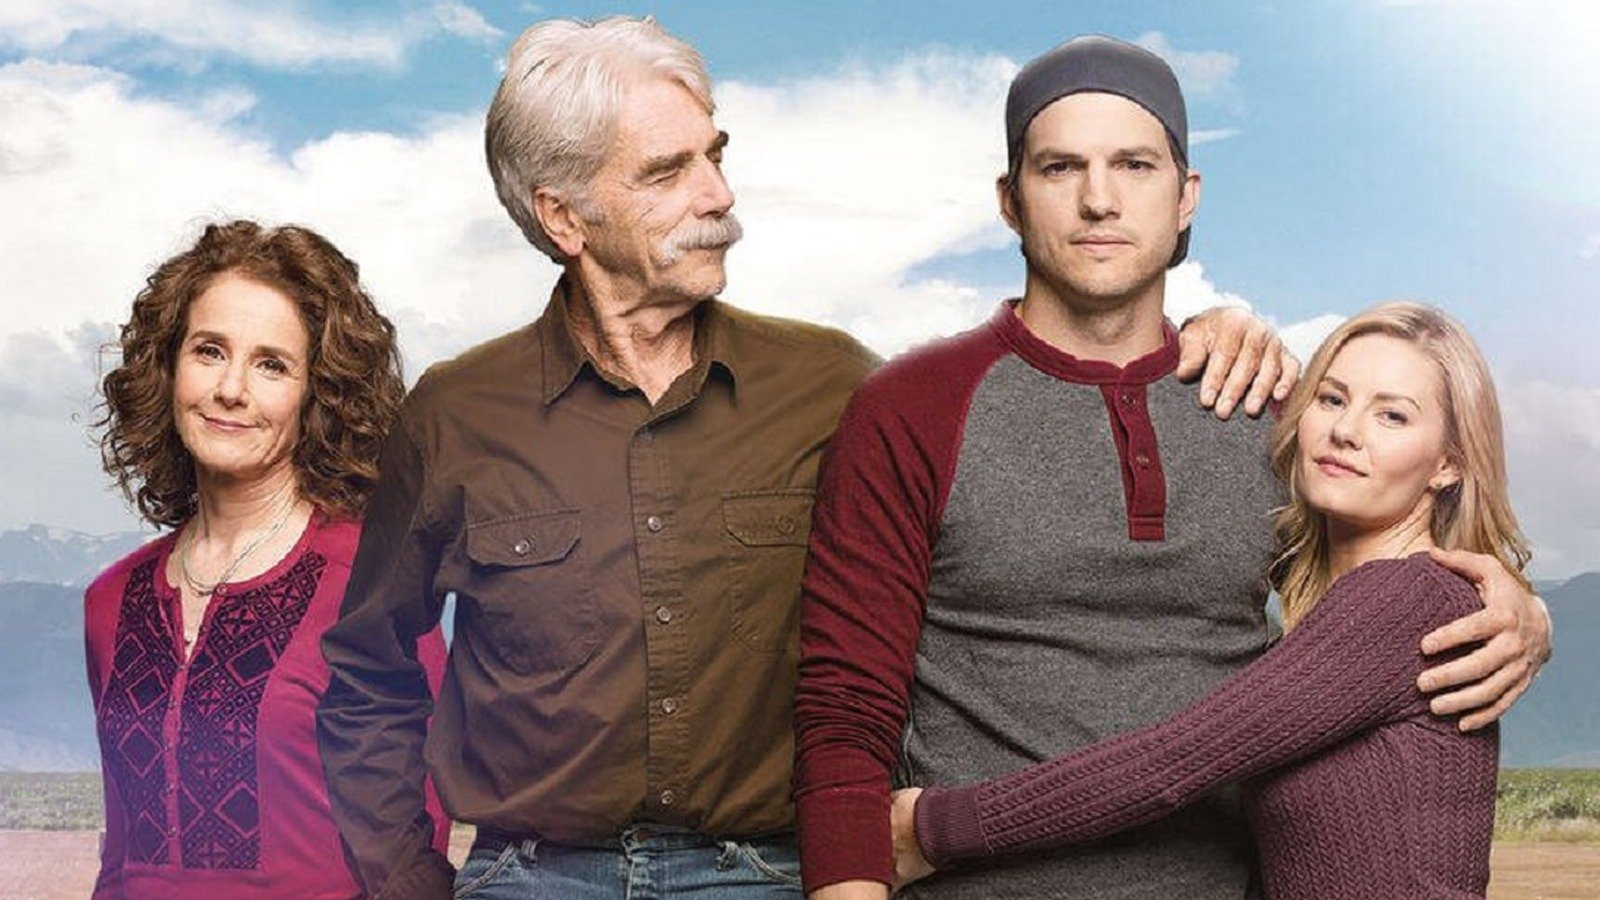 The Real Reason Netflix's The Ranch Was Canceled